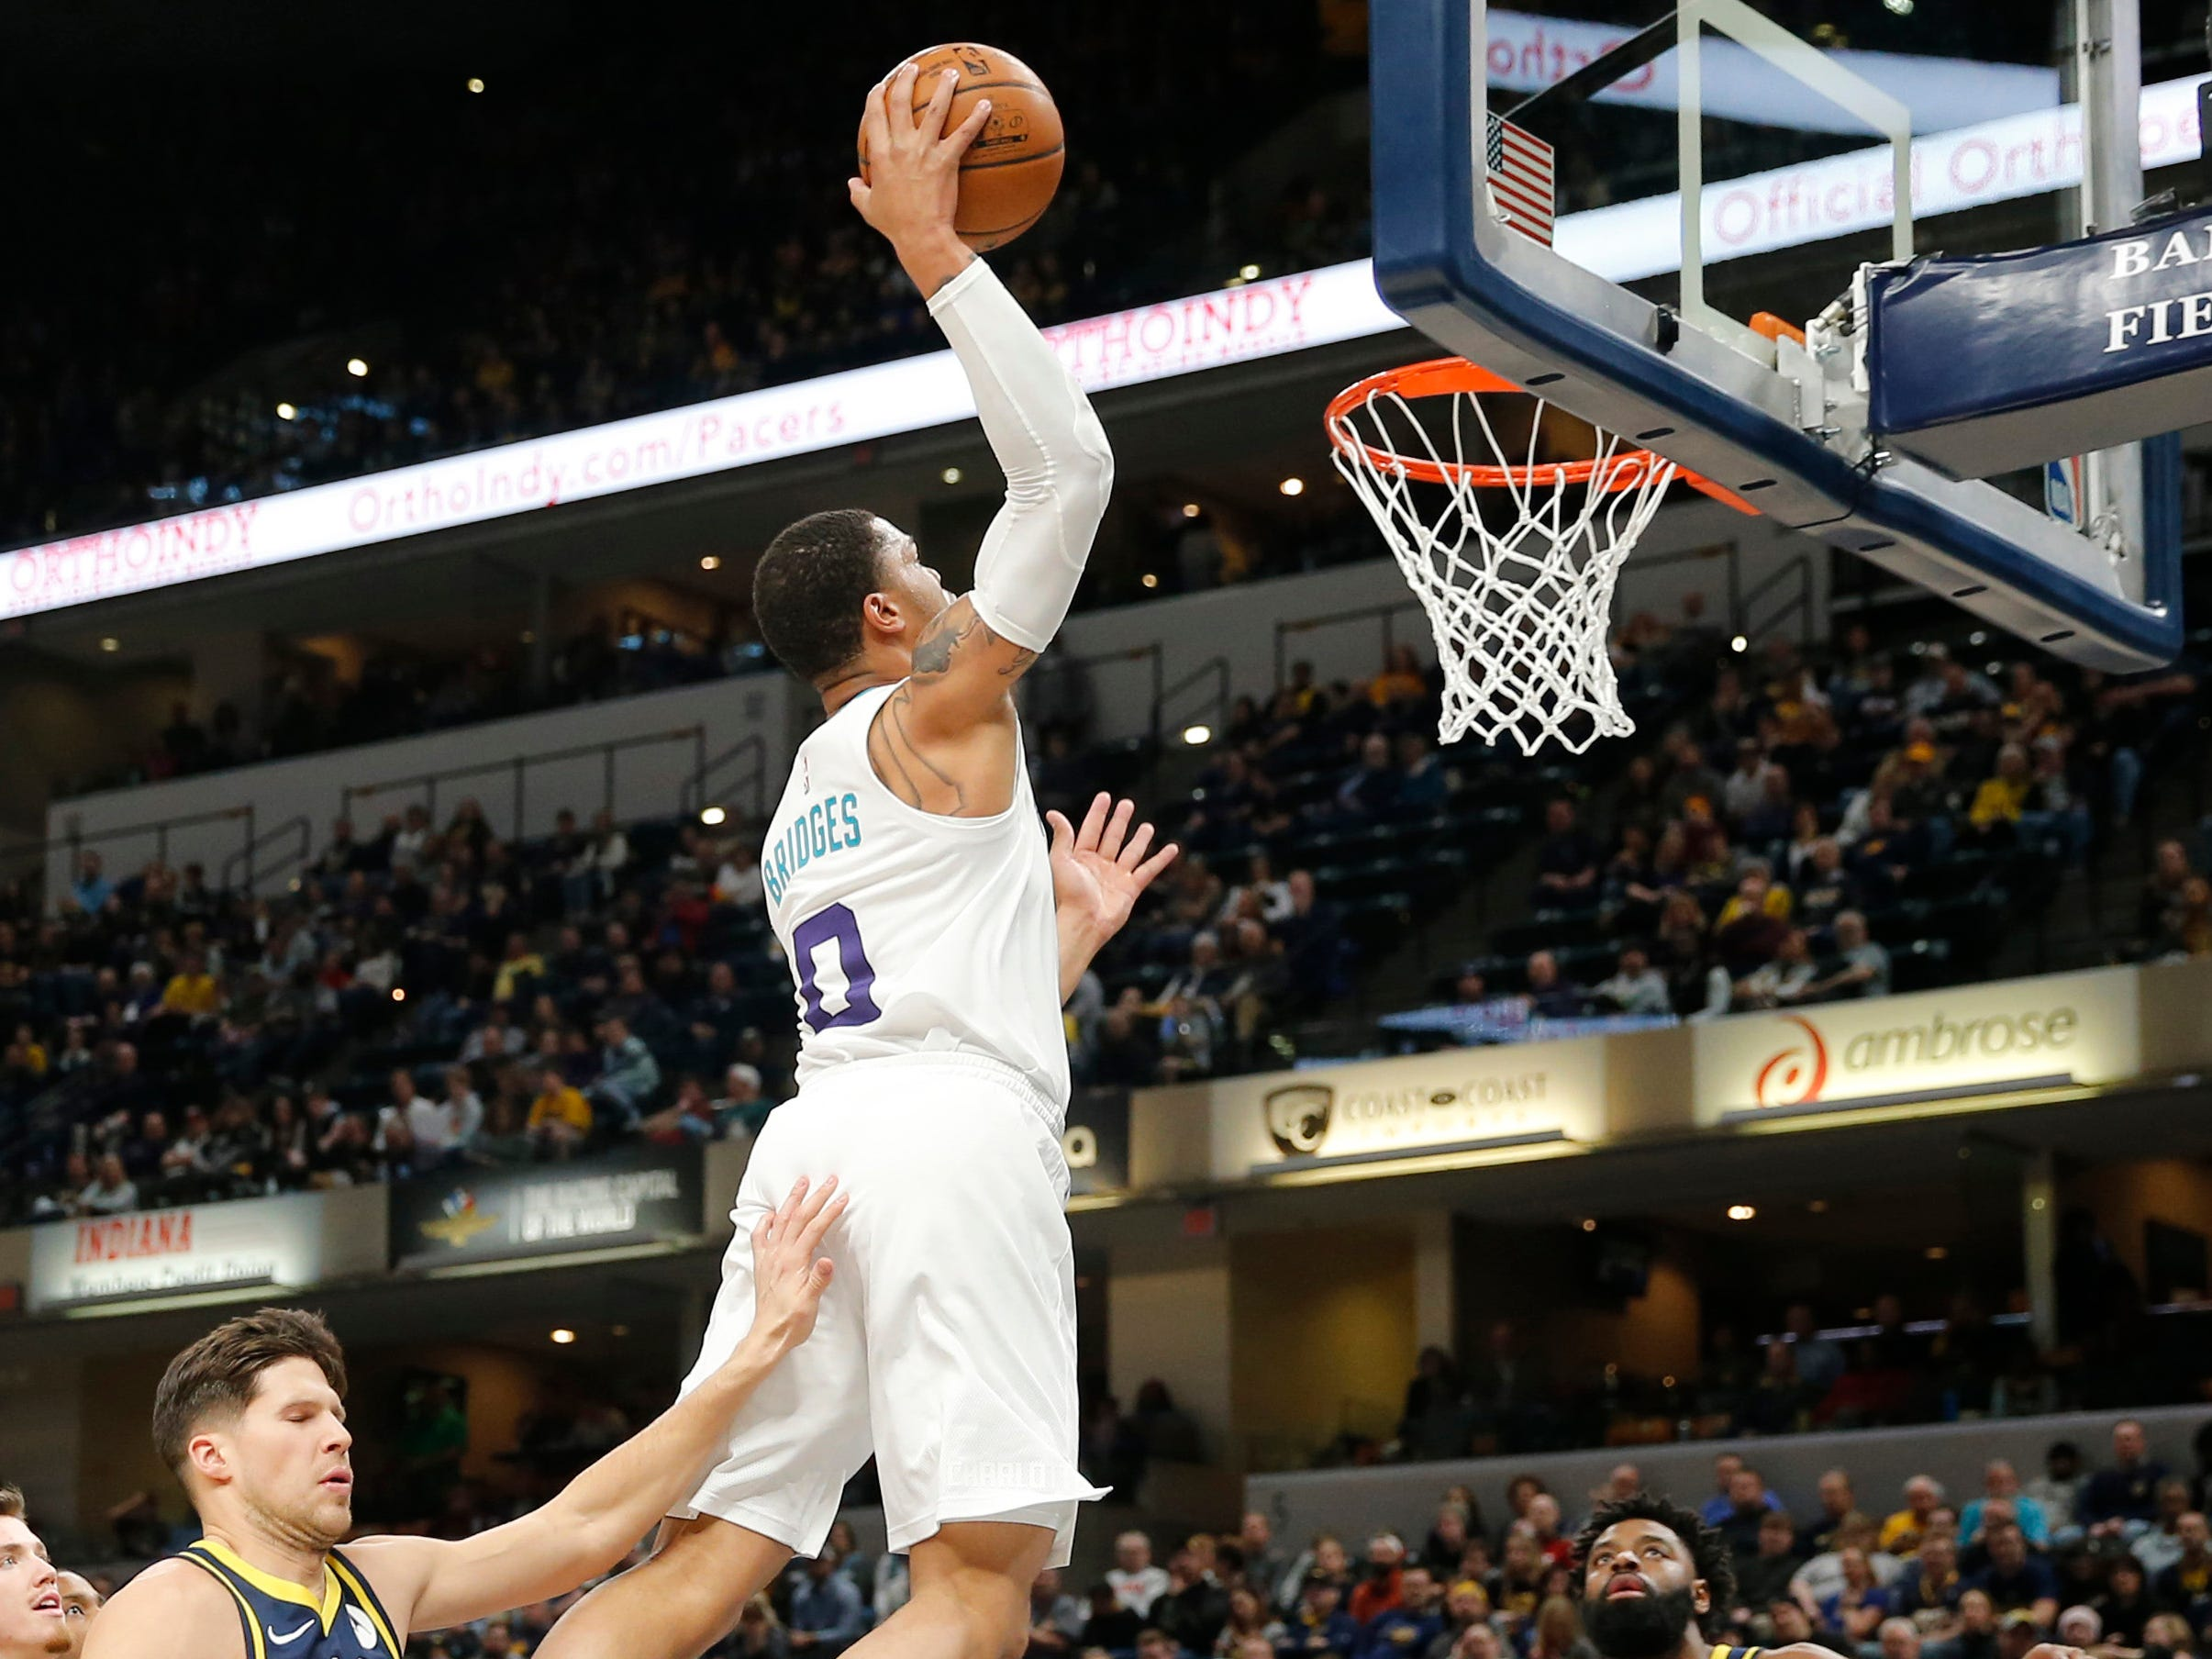 Jan. 20: Hornets forward Miles Bridges rises up for the one-handed slam against the Pacers in Indianapolis.